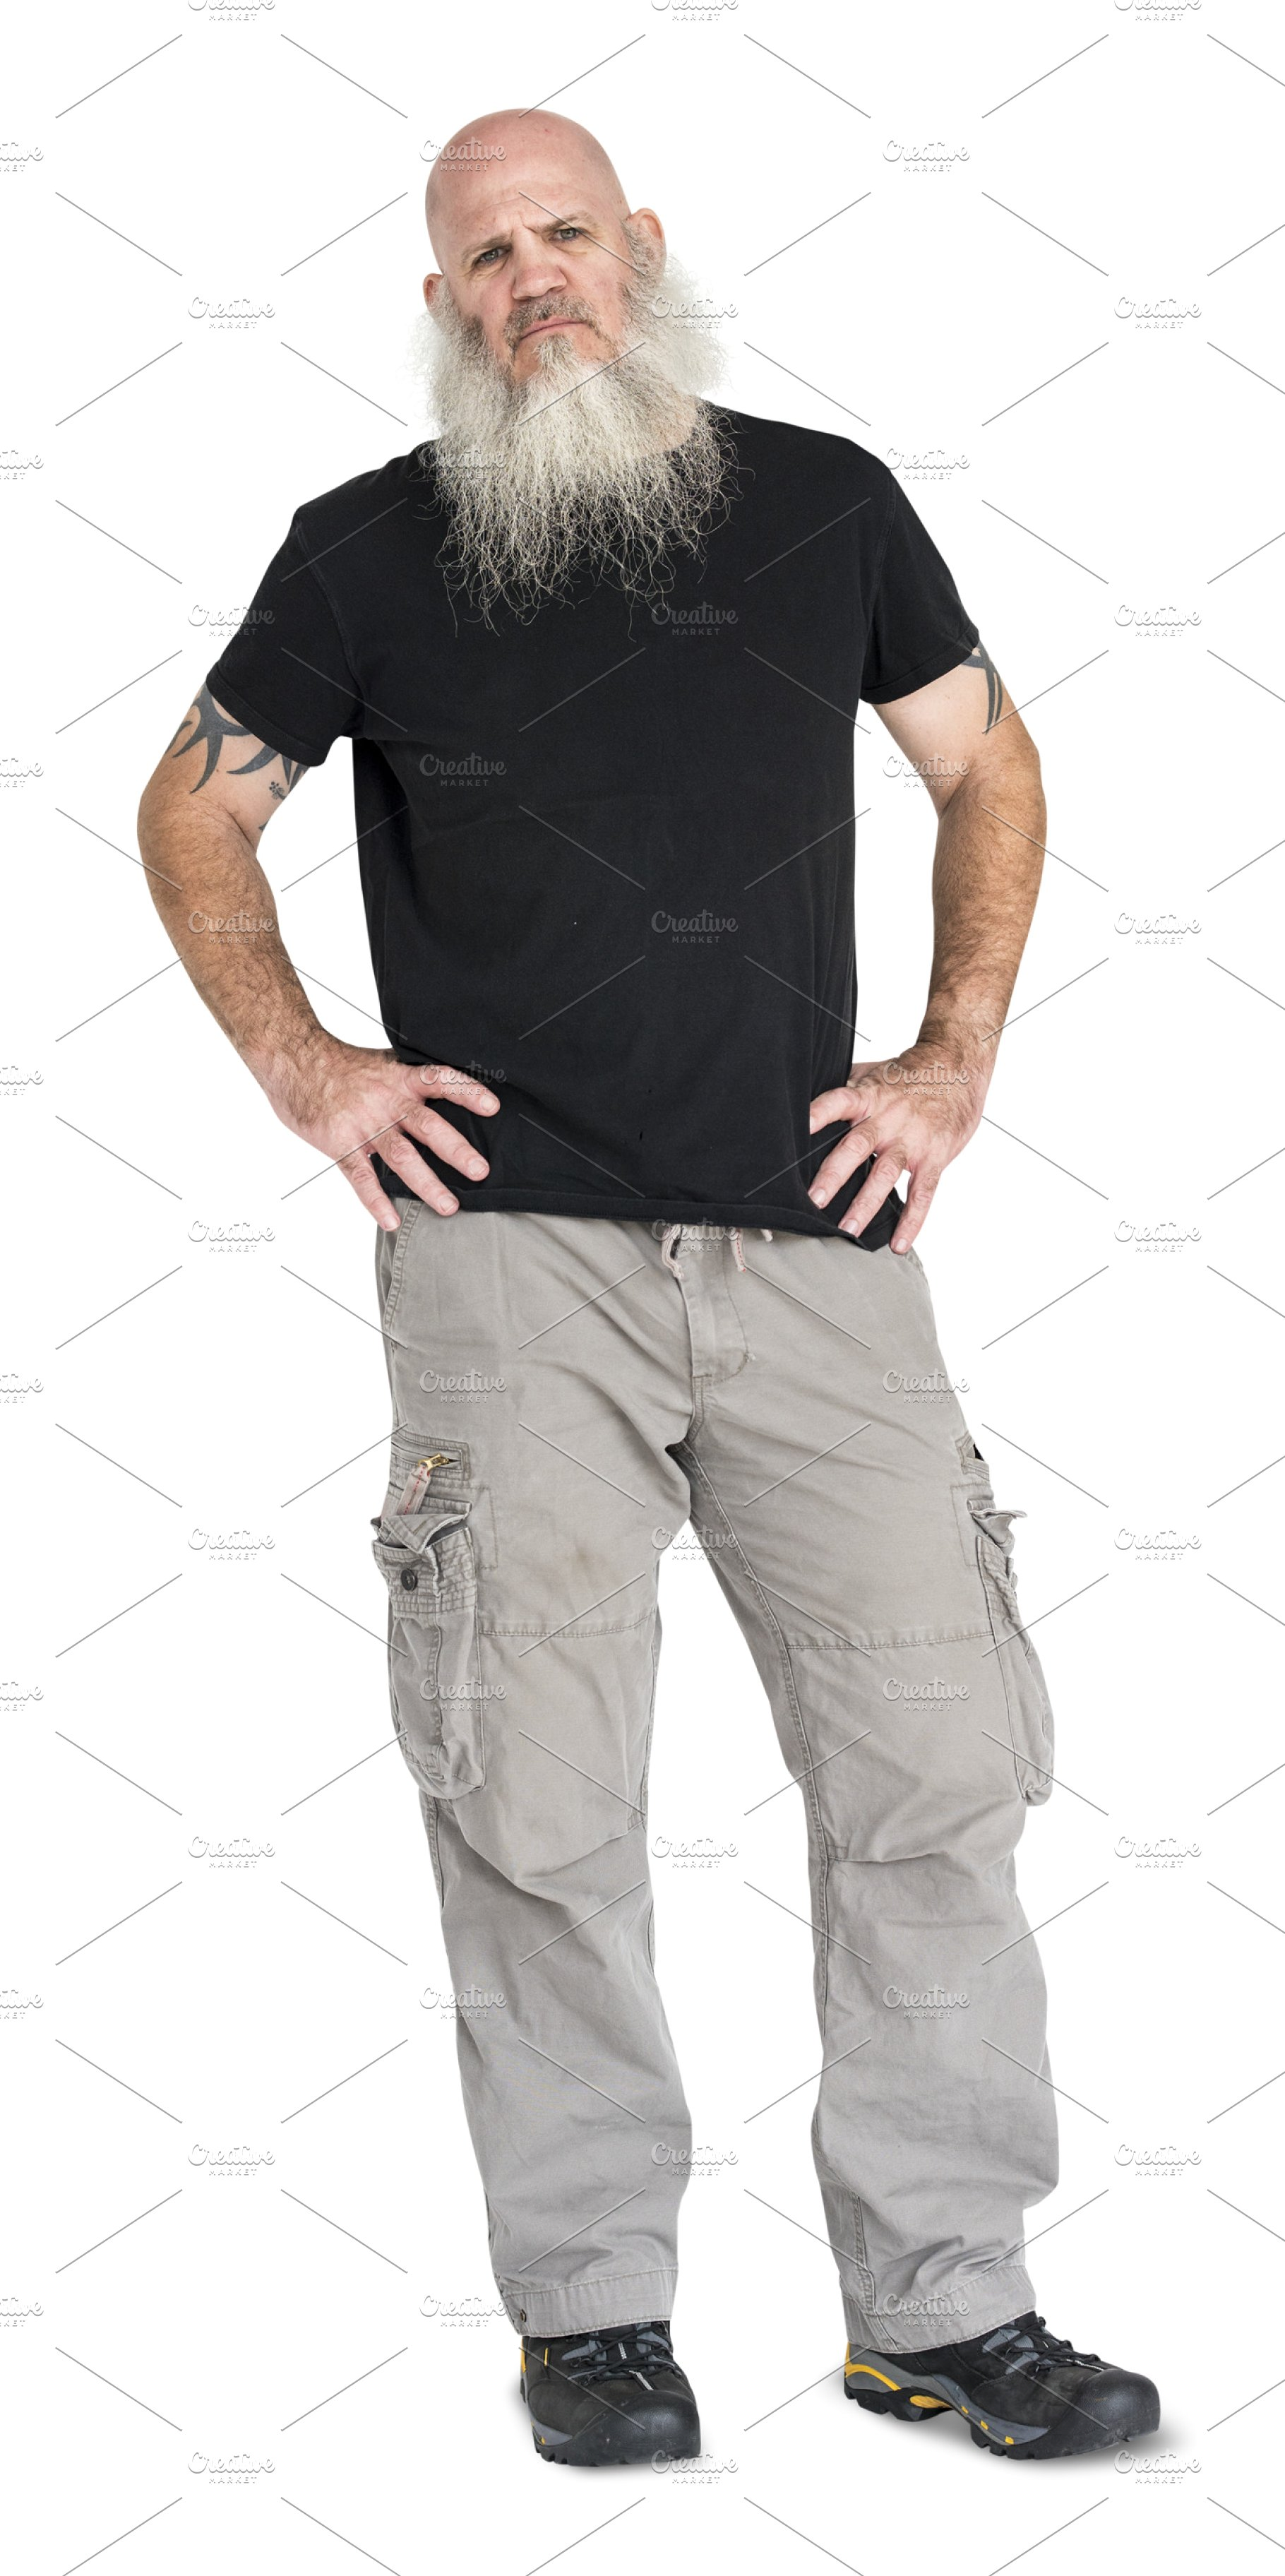 Man full body studio (PNG).